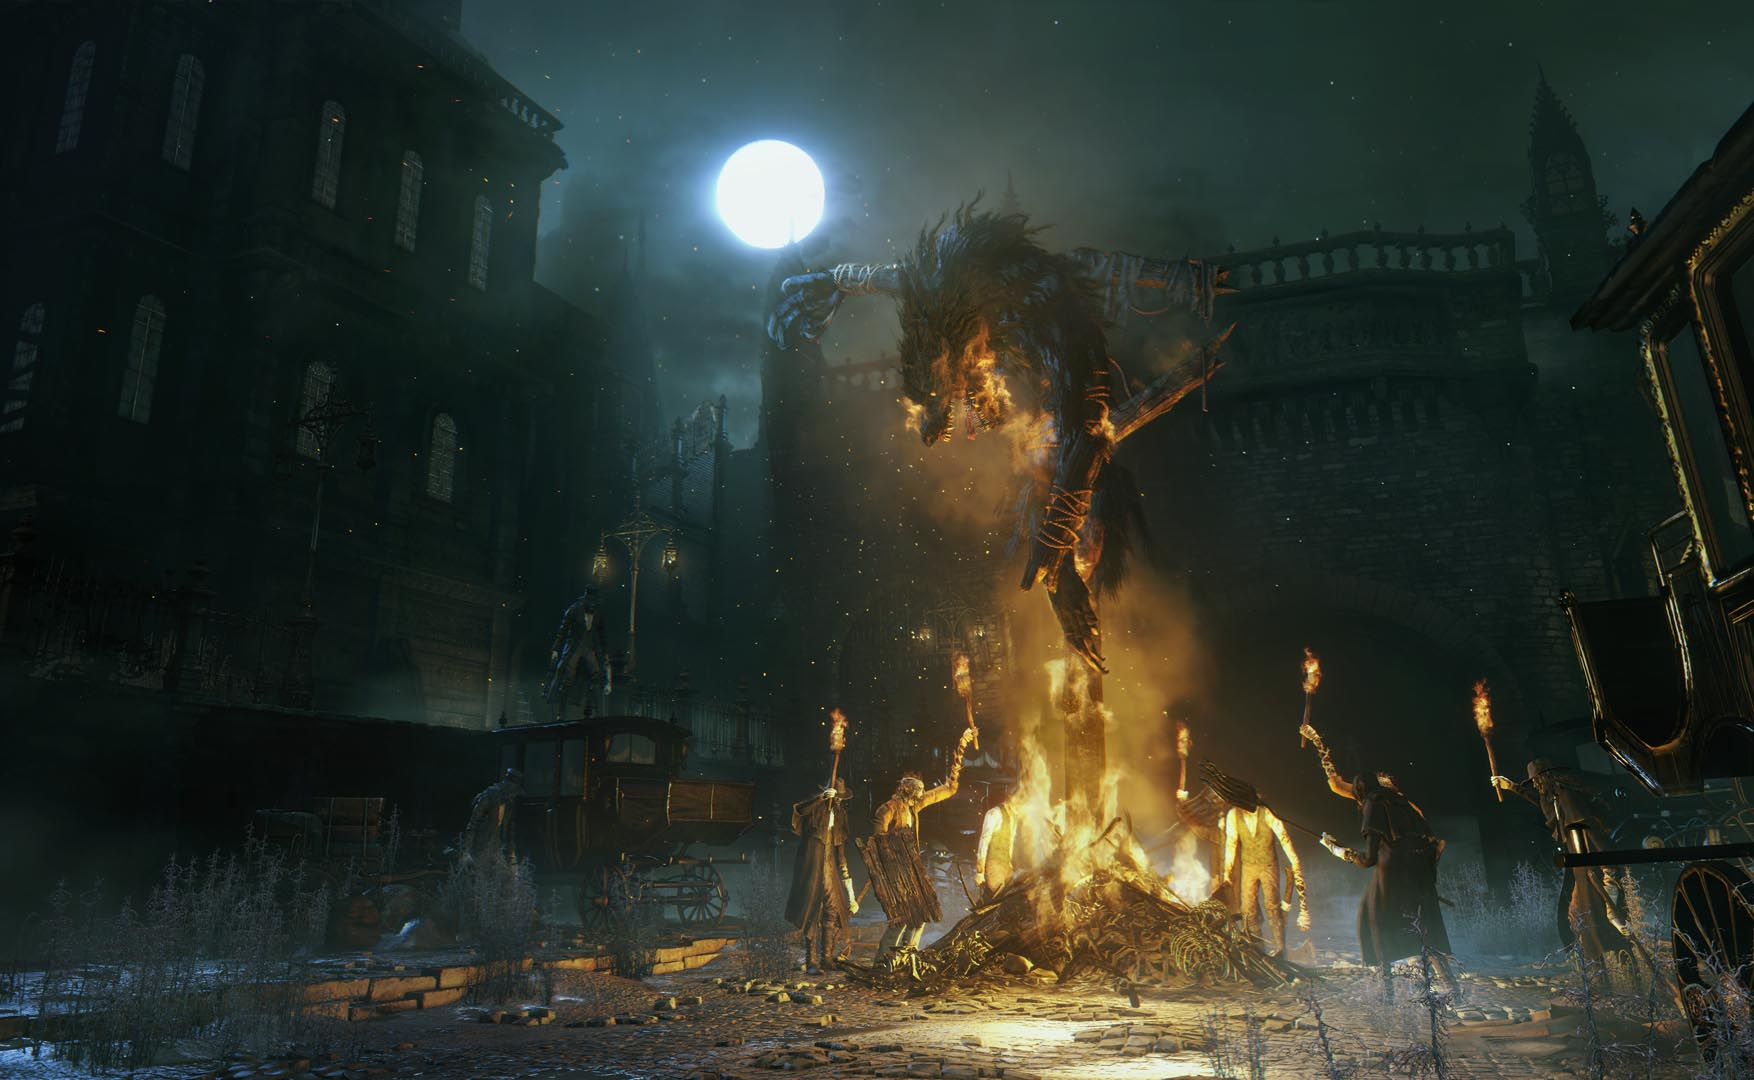 Bloodborne has an illness, a journey and a terribly twisted town